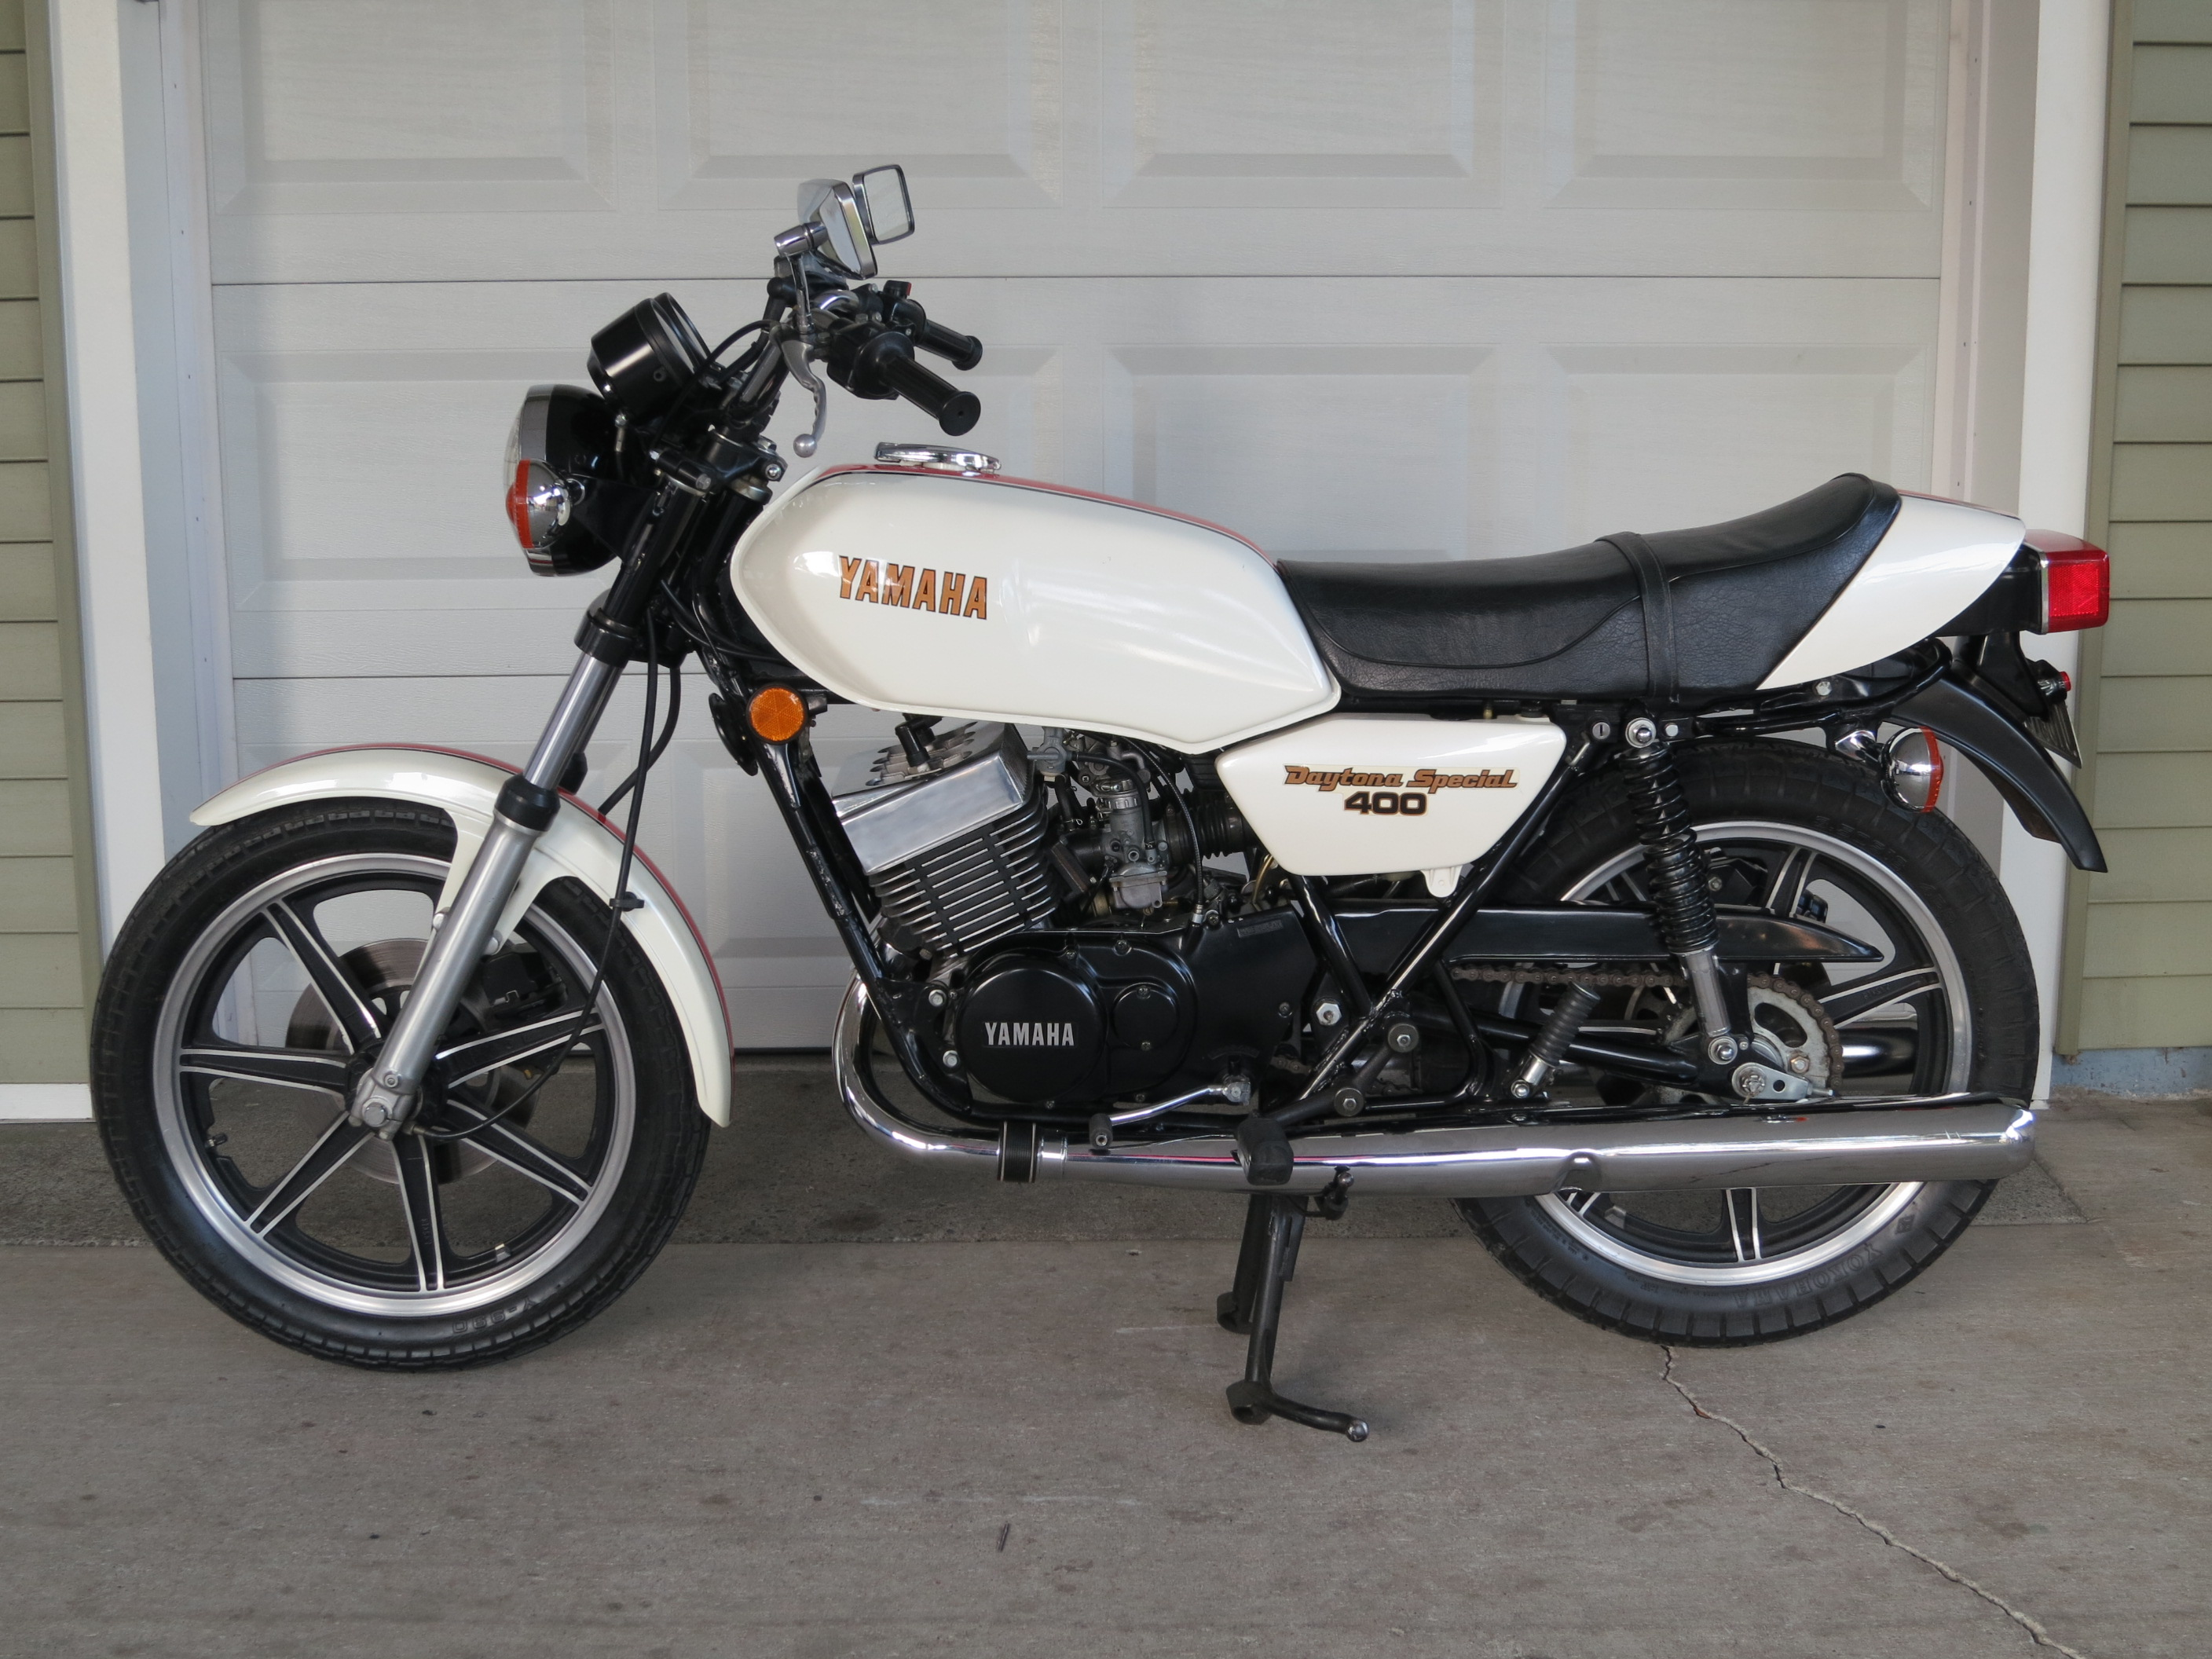 Yamaha Archives - Page 39 of 101 - Rare SportBikes For Sale